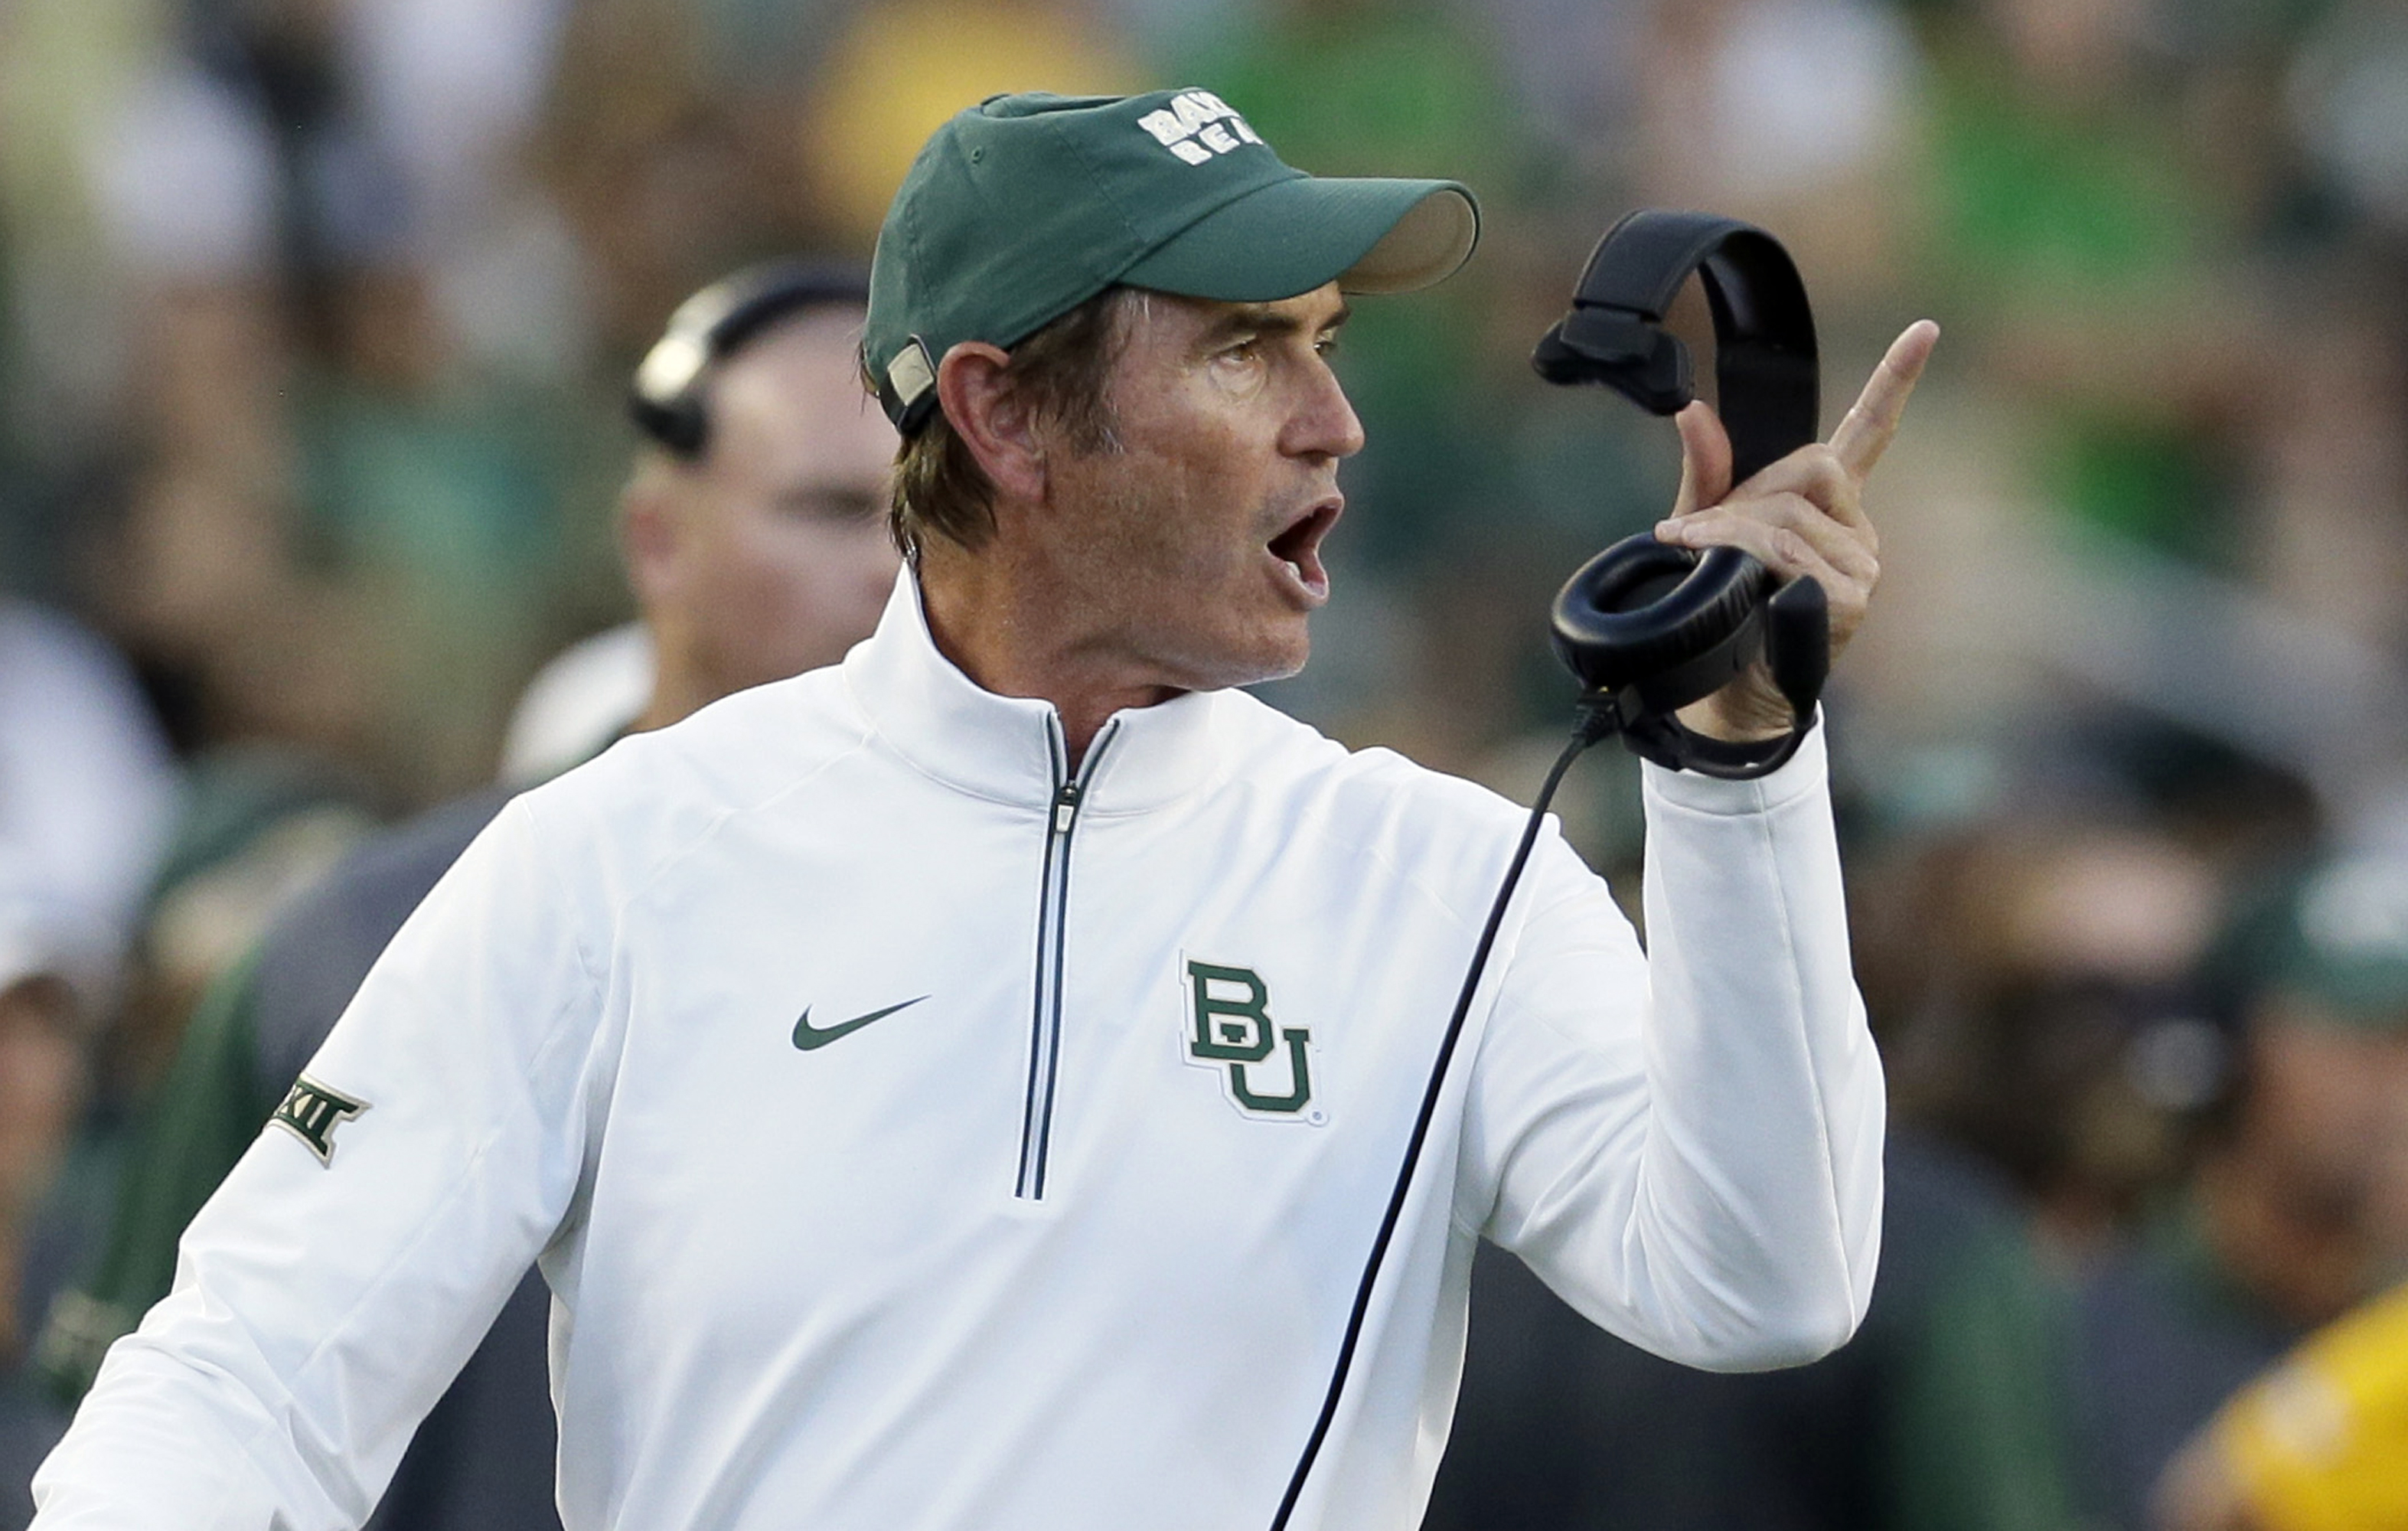 FILE - In this Sept. 12, 2015, file photo, Baylor coach Art Briles yells from the sideline during the first half of an NCAA college football game against Lamar in Waco, Texas. Things may be supersized in Texas, but for North Carolina's Larry Fedora and Ba